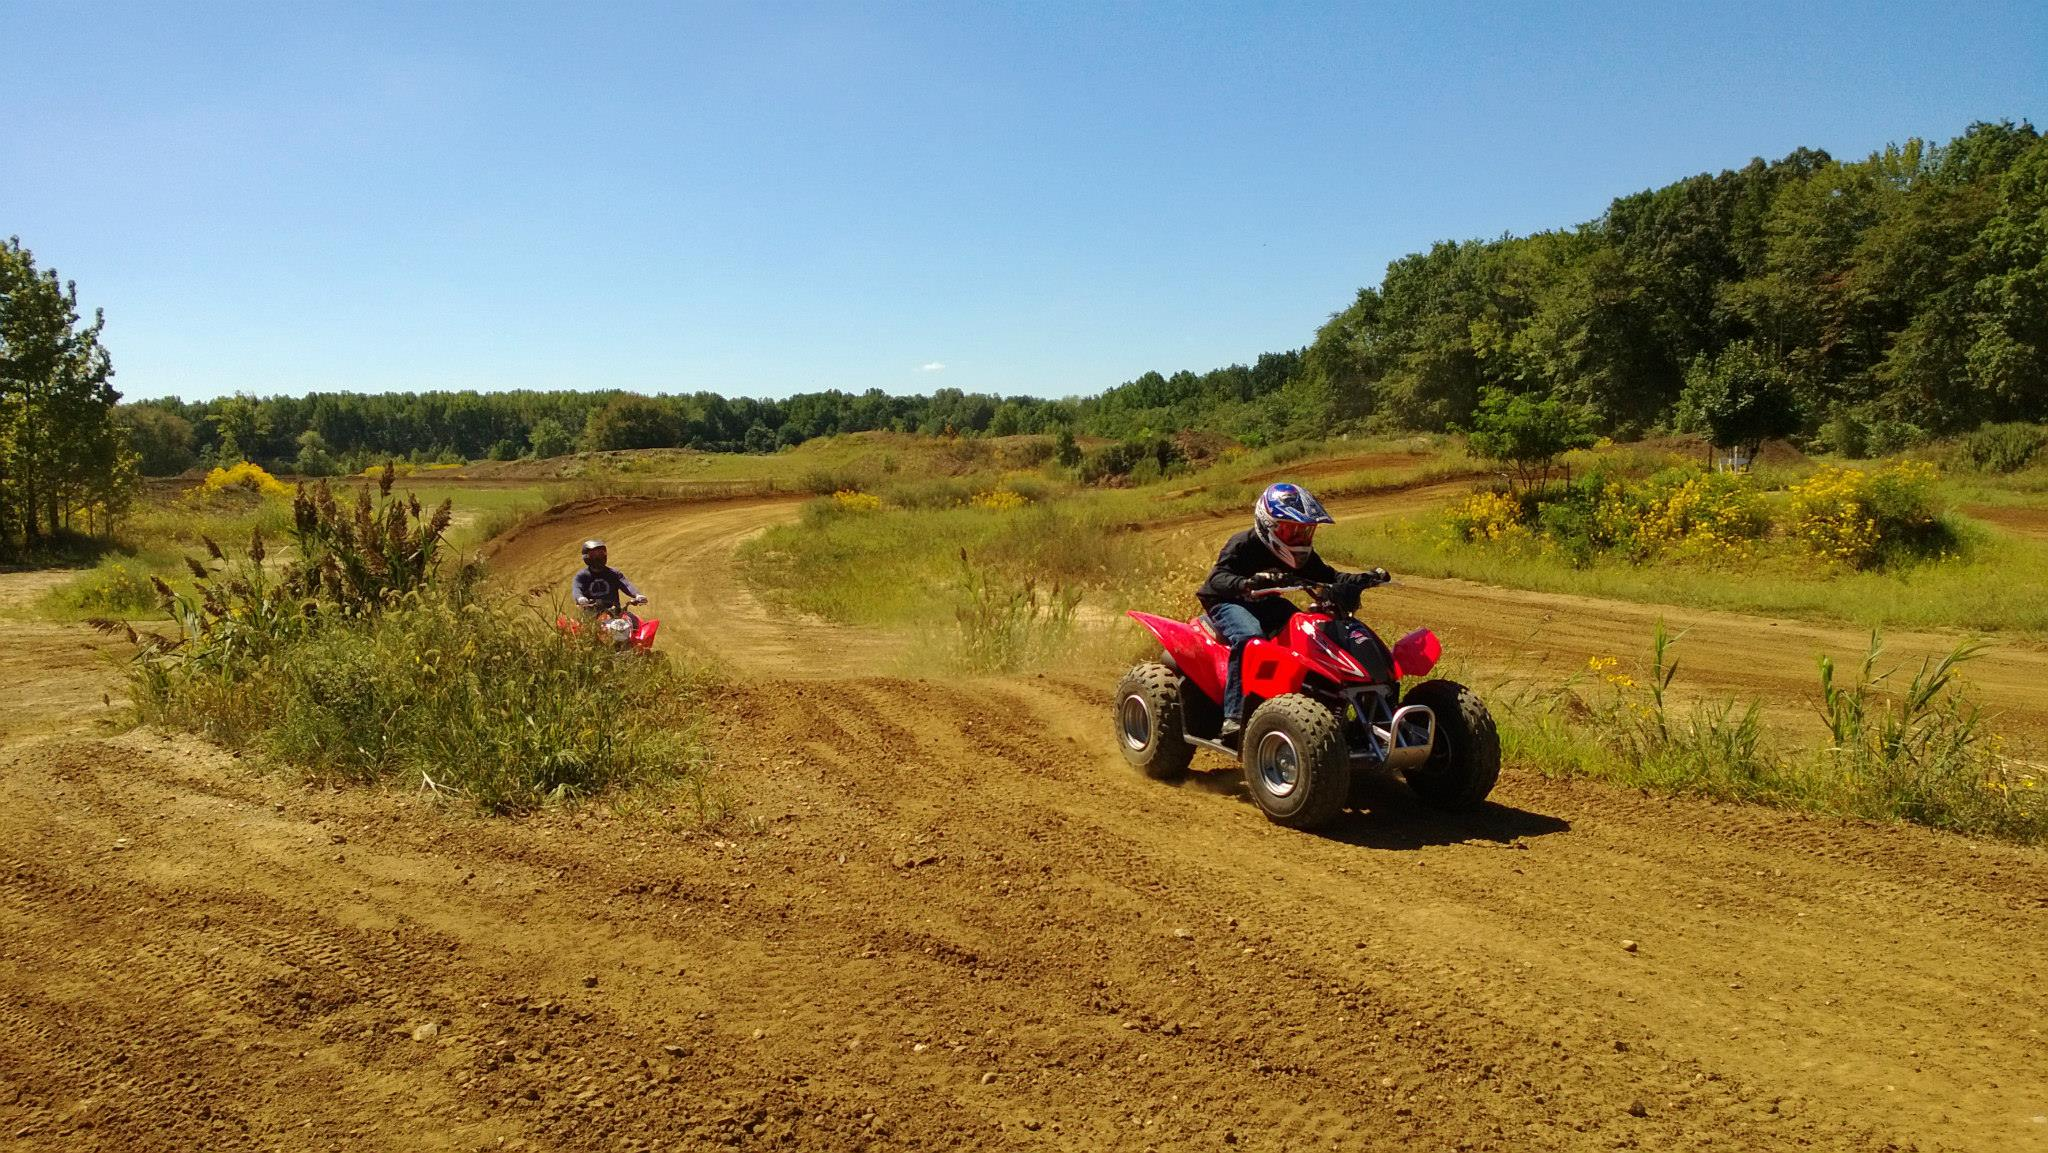 NJ ATV Rentals is a division of Motovation which has been in operation since We are proud to offer our services at the famous at Raceway Park. We offer ATV rentals to riders ages 8 and up. Our ATV's are of the latest models and are very easy to control with .